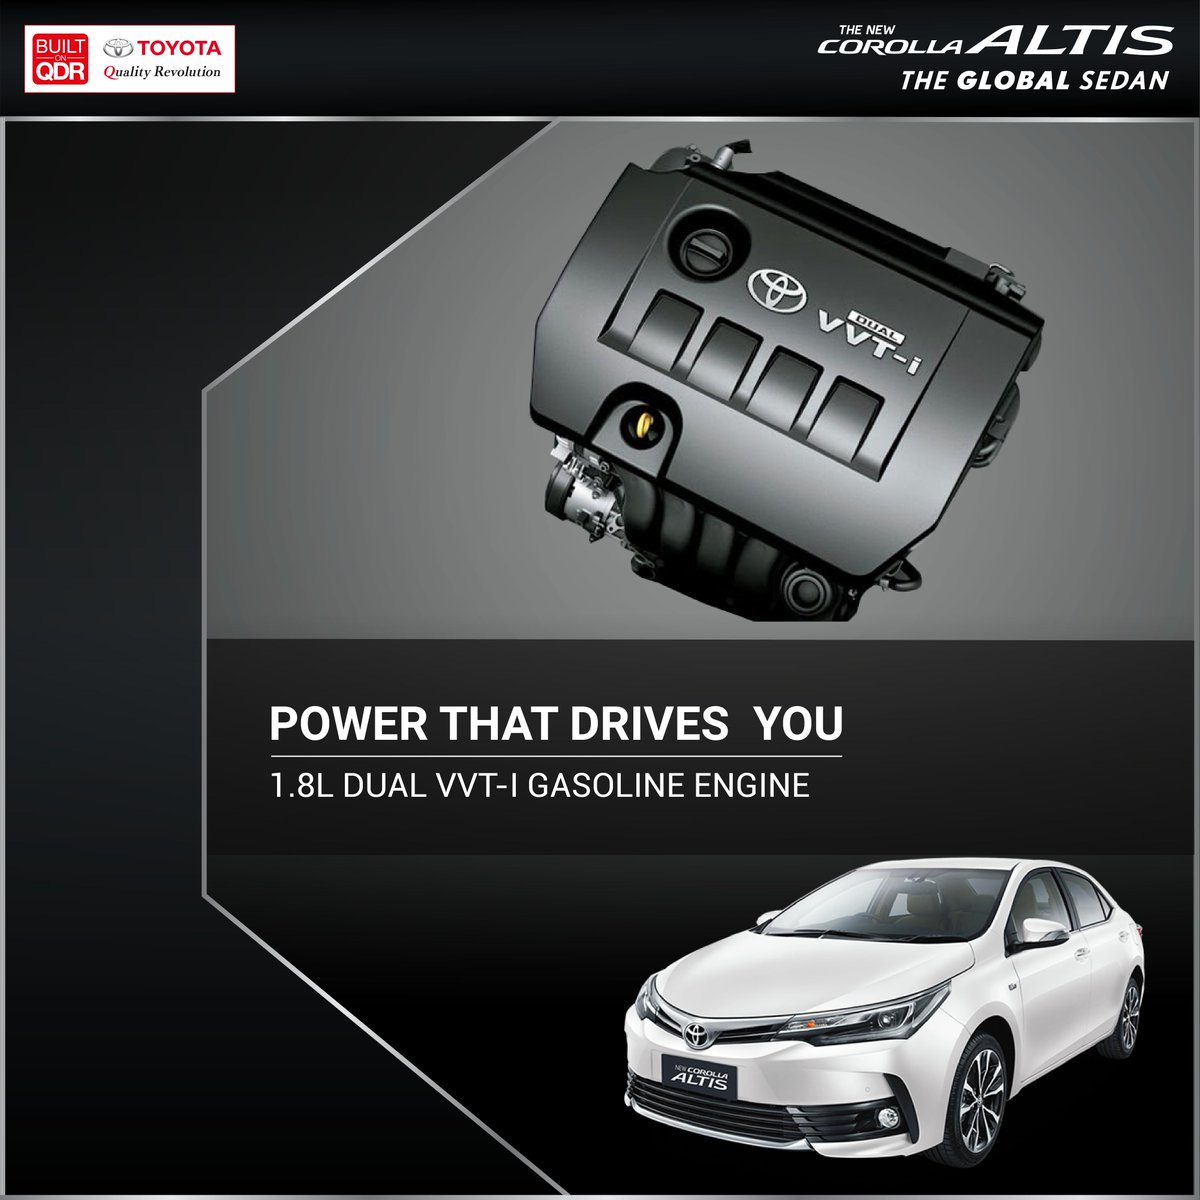 Experience the sedan that's secured the trust of the global elite, test-drive the Toyota Corolla Altis today.  Visit : https://t.co/TnBFElen8R for more.  #Toyota #CorollaAltis https://t.co/WtA9622ttp